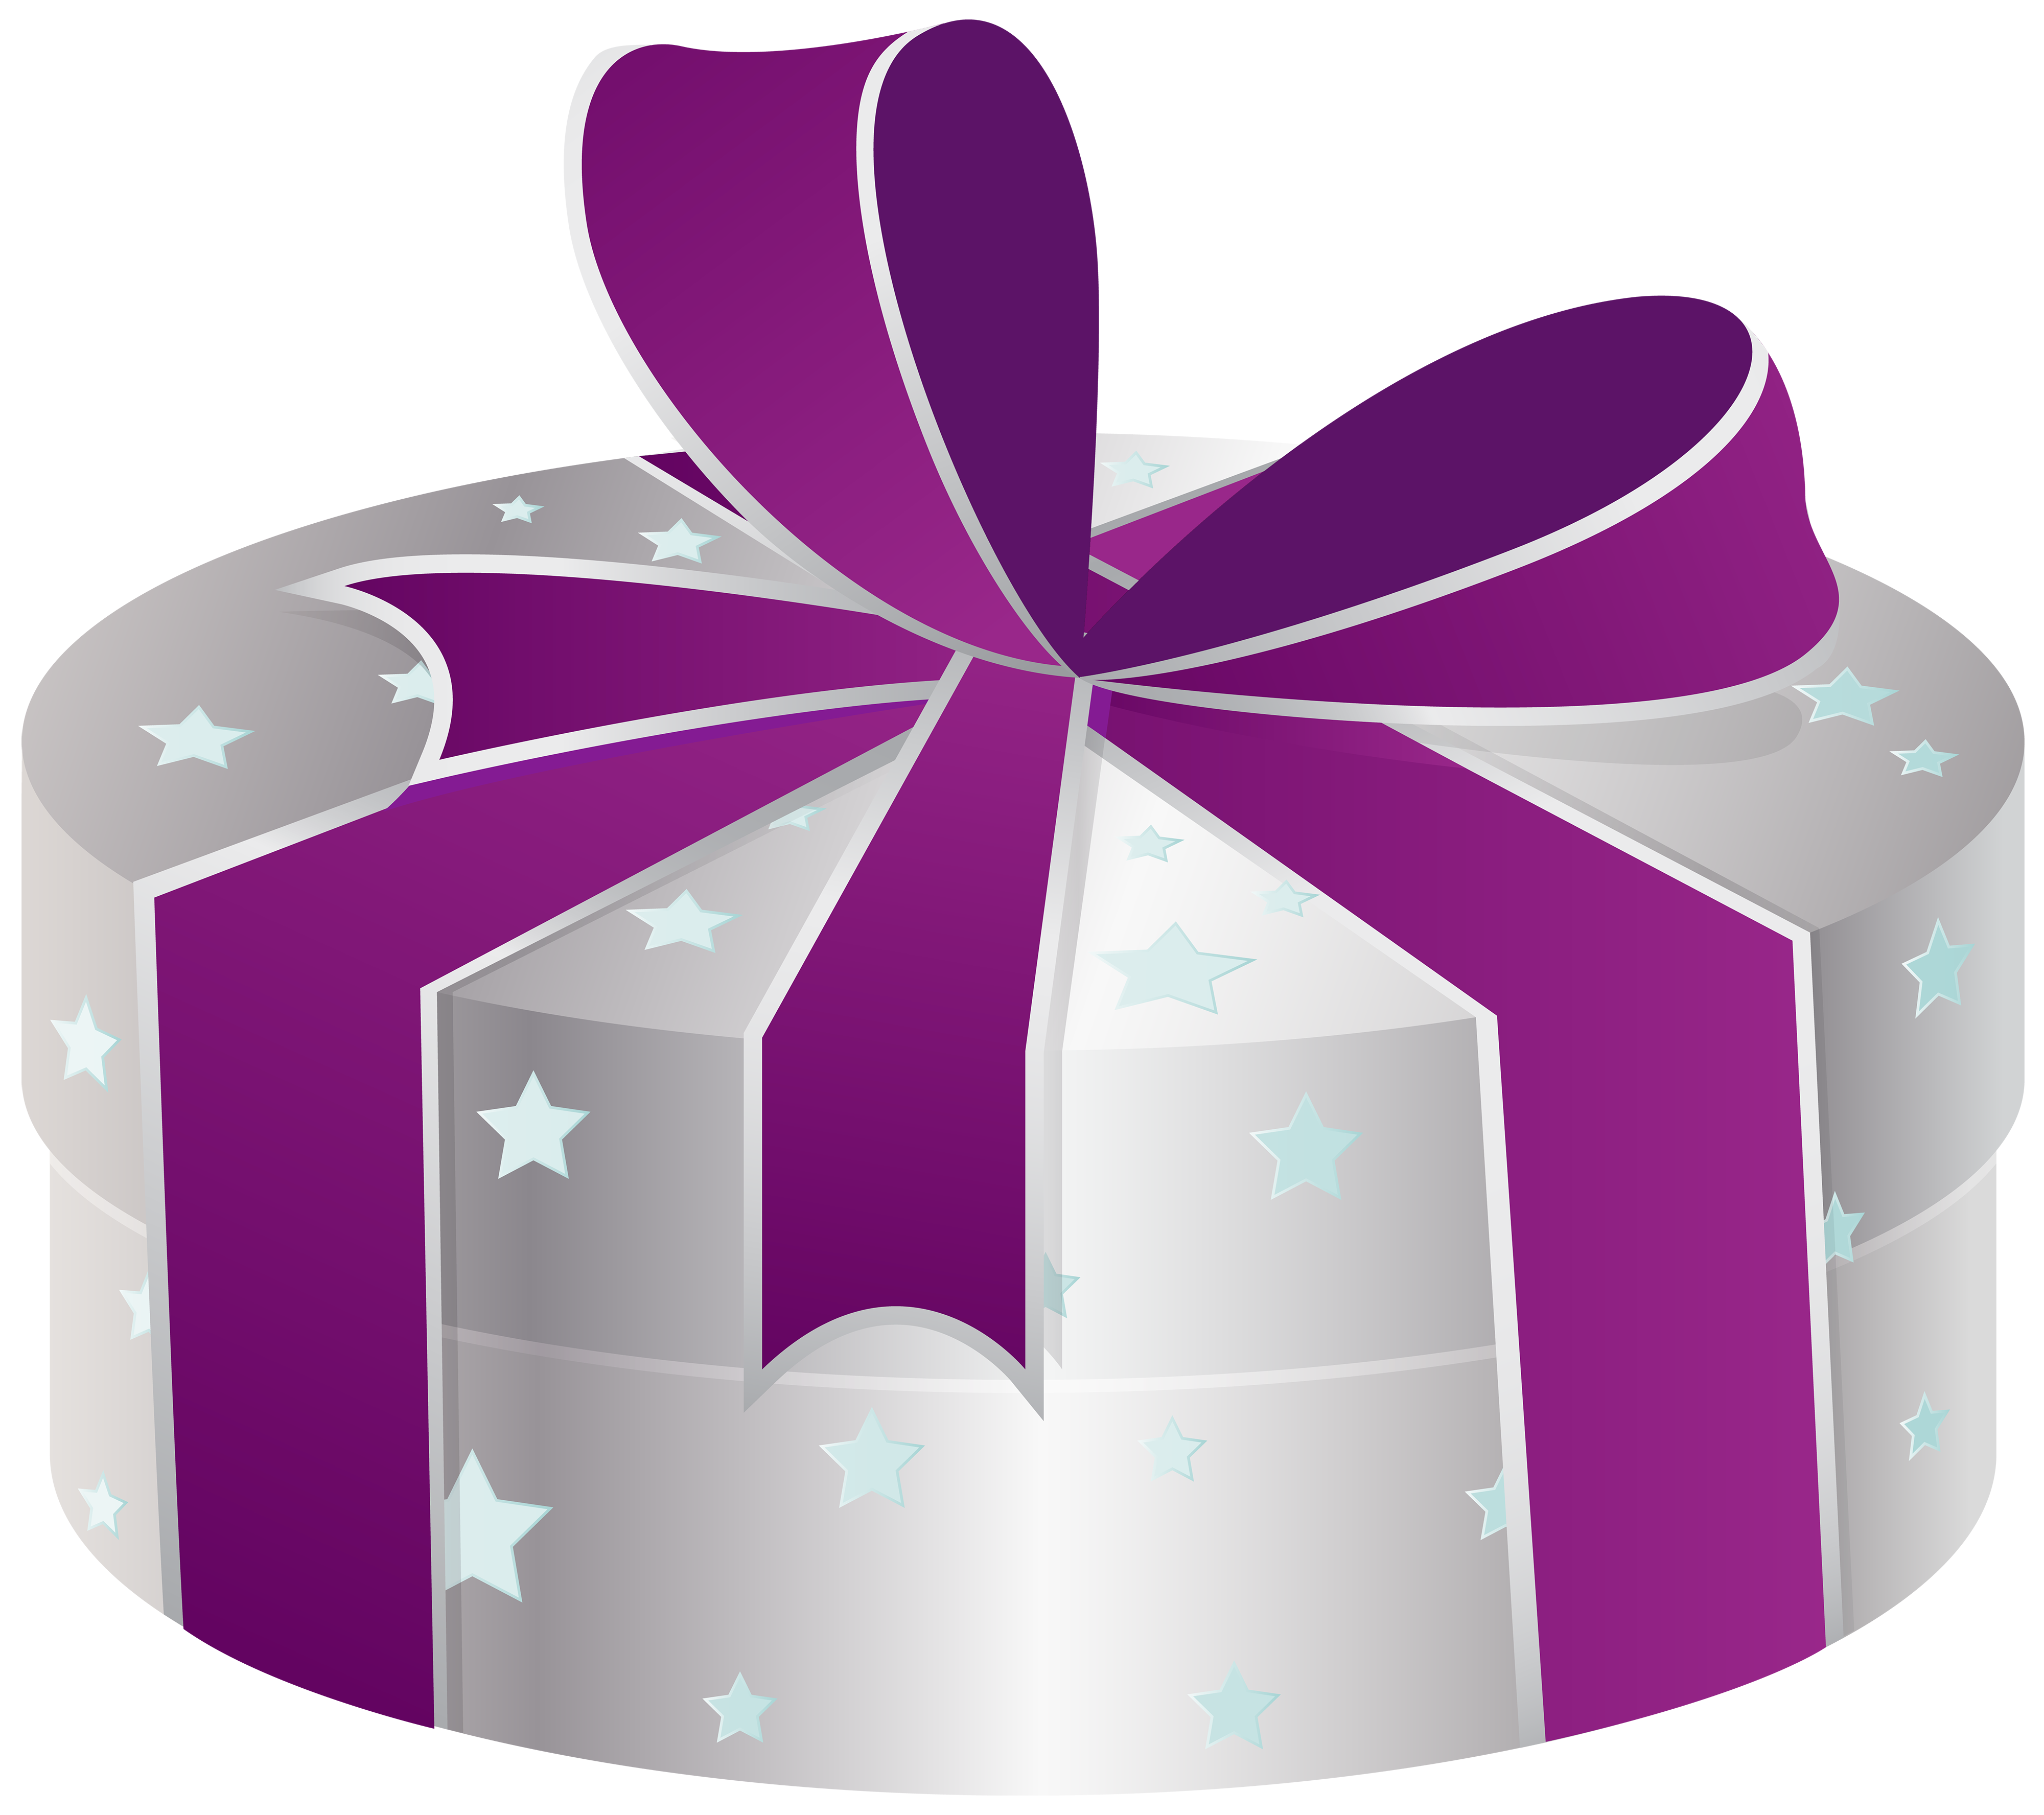 Gift clipart special gift. Silver box with stars